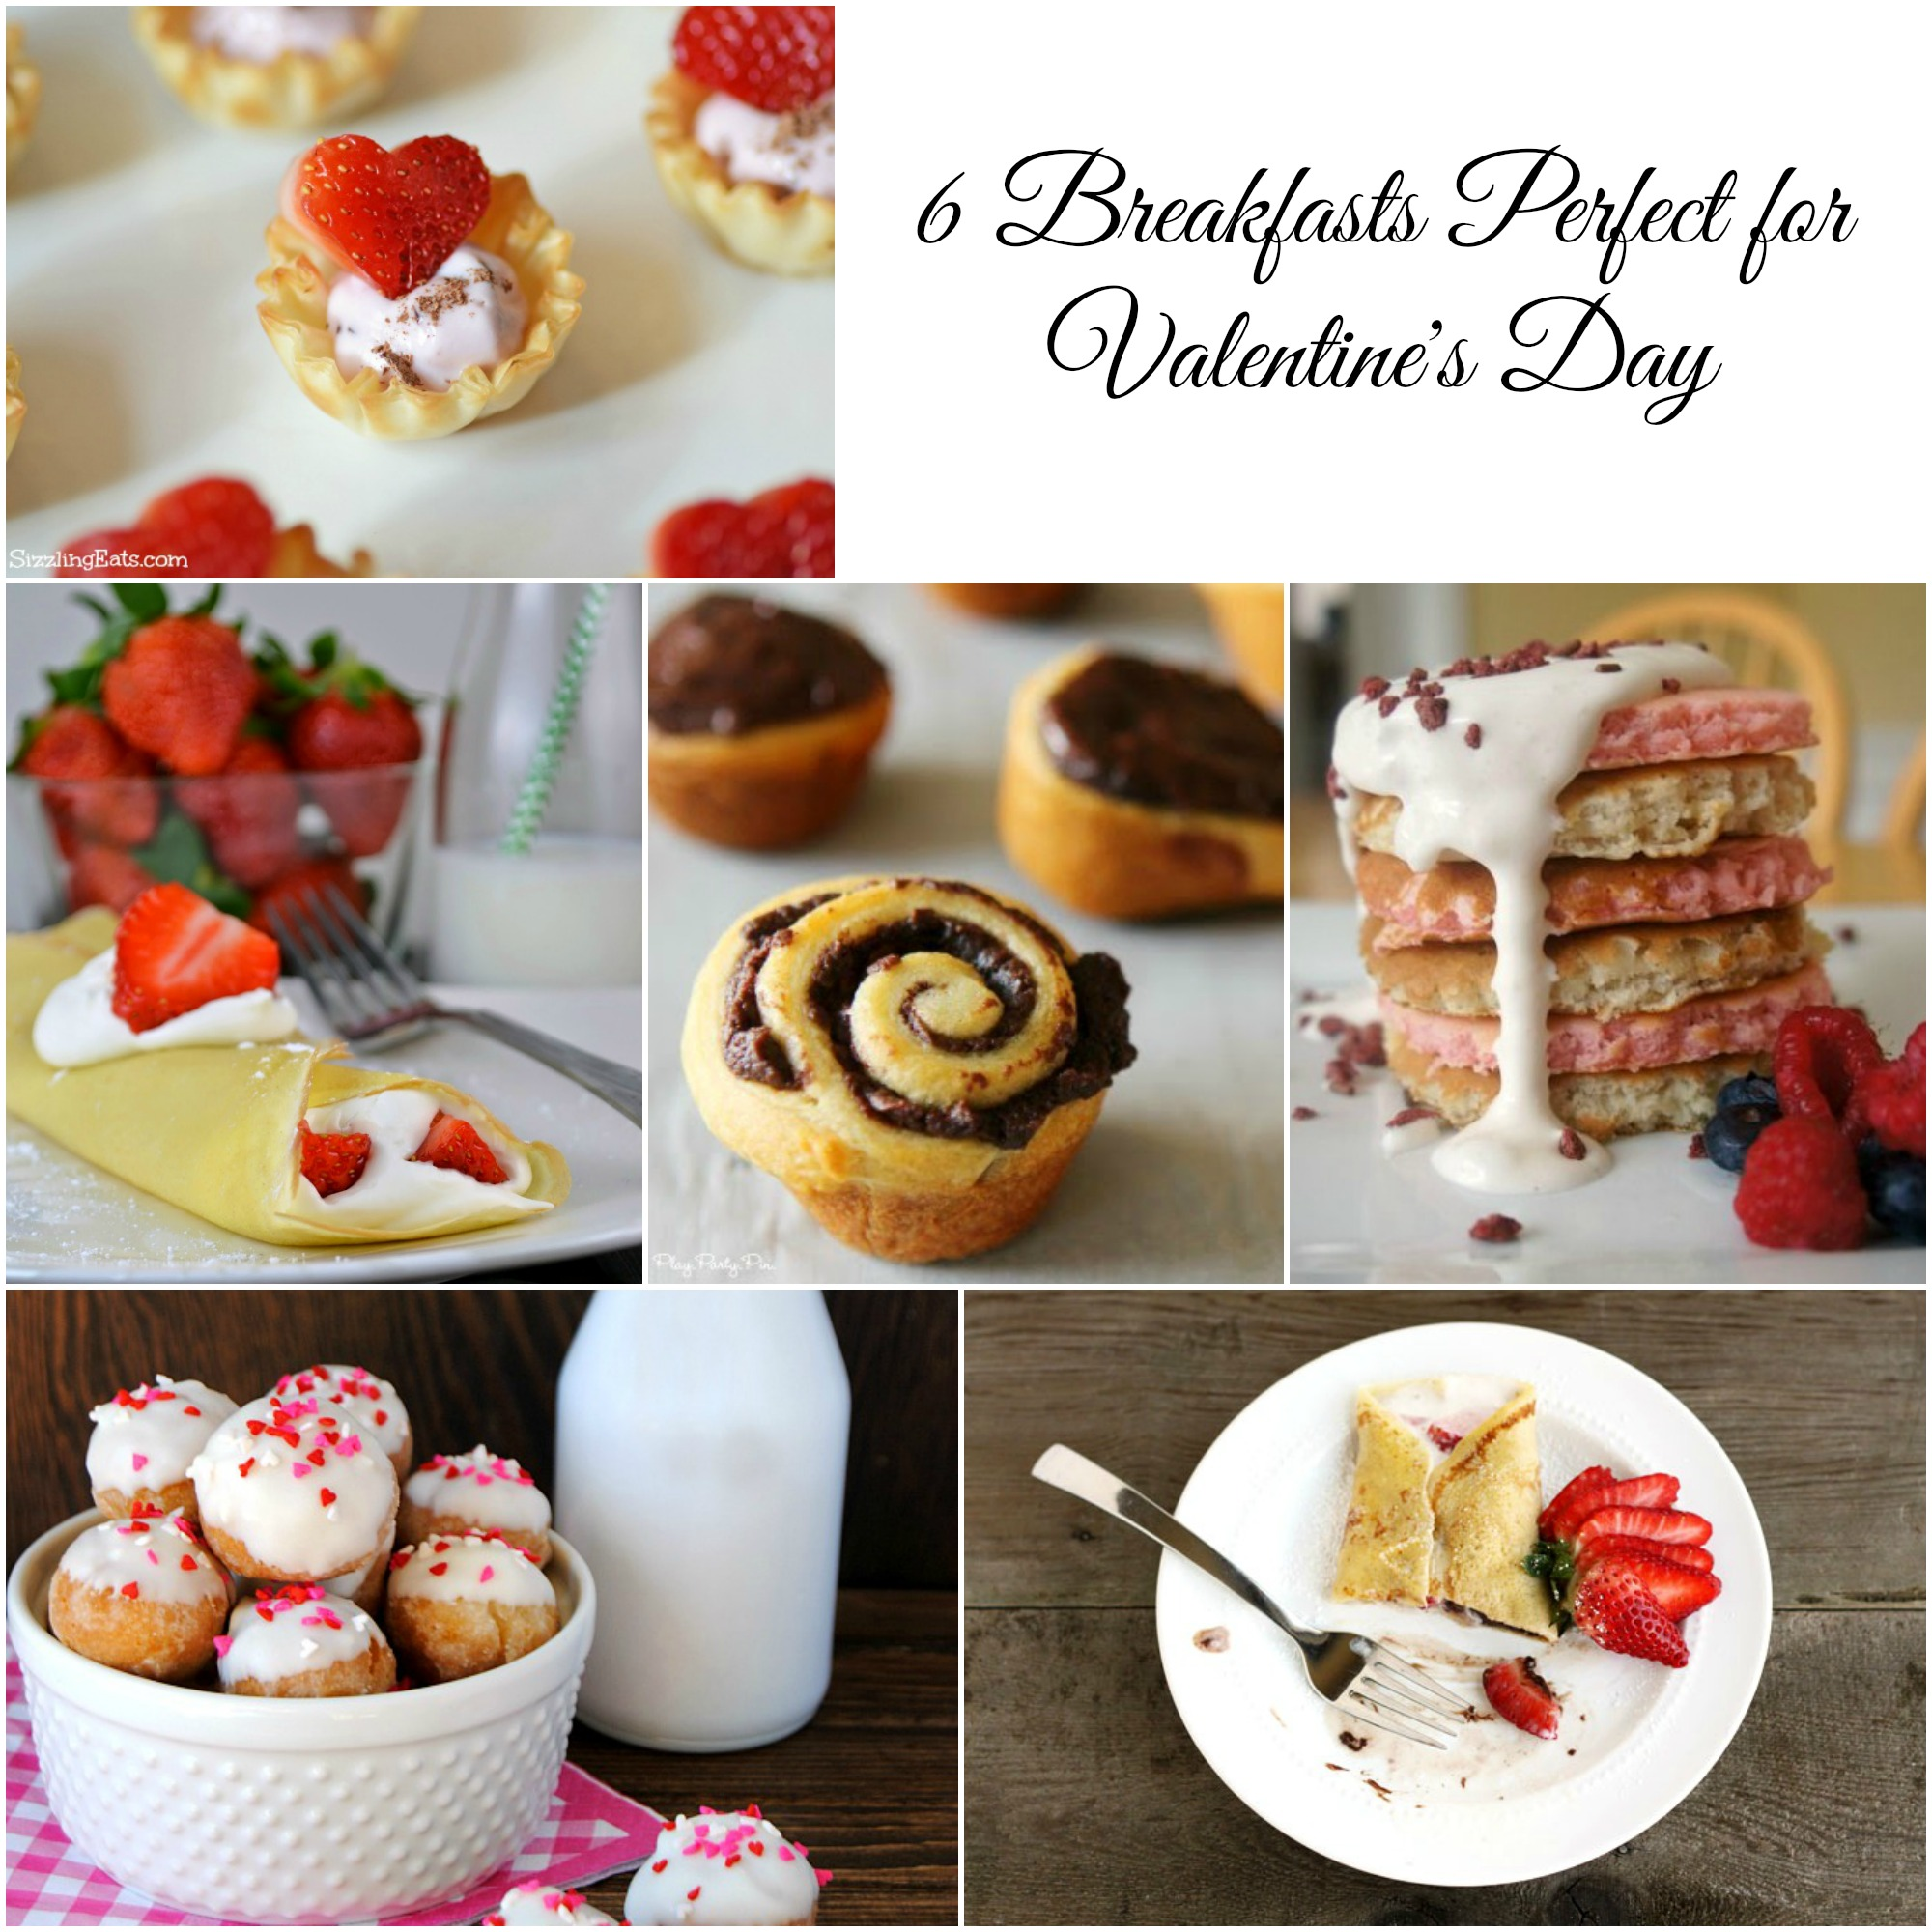 Valentine's breakfast ideas, Valentine's food